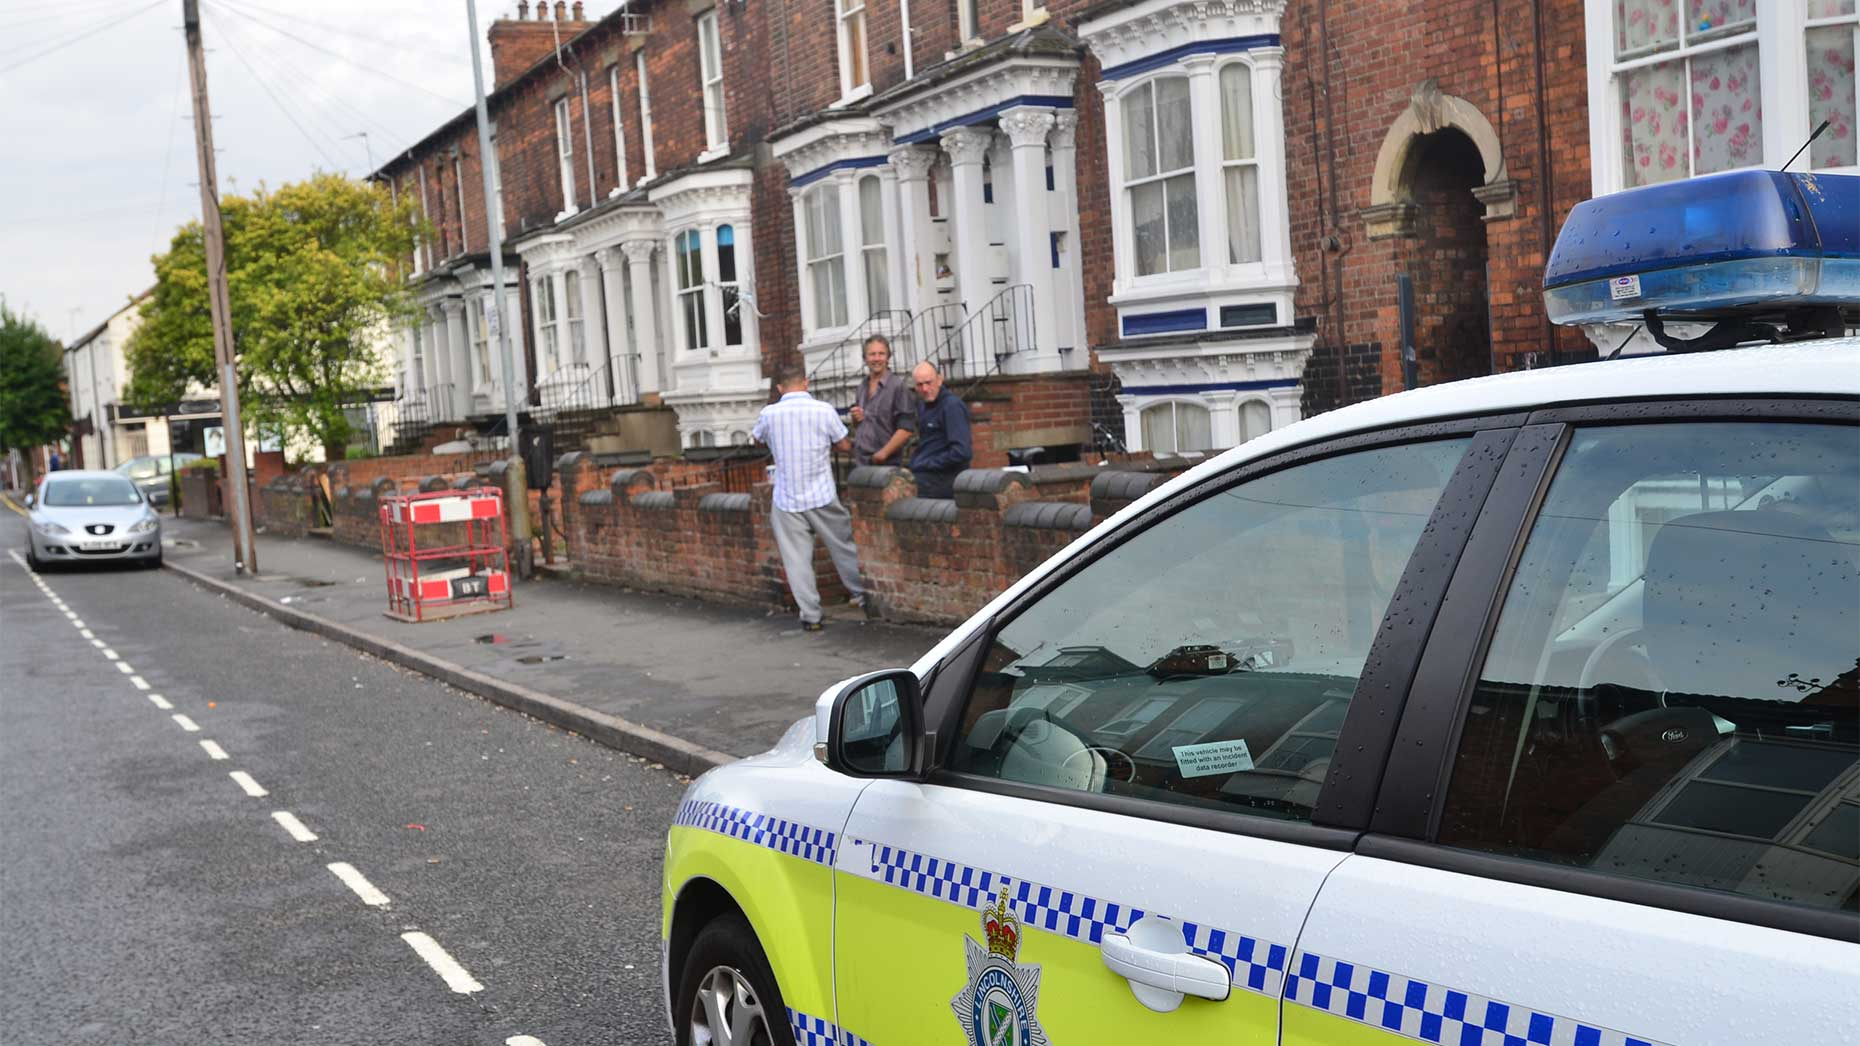 Police at the scene of the incident on Portland Street.